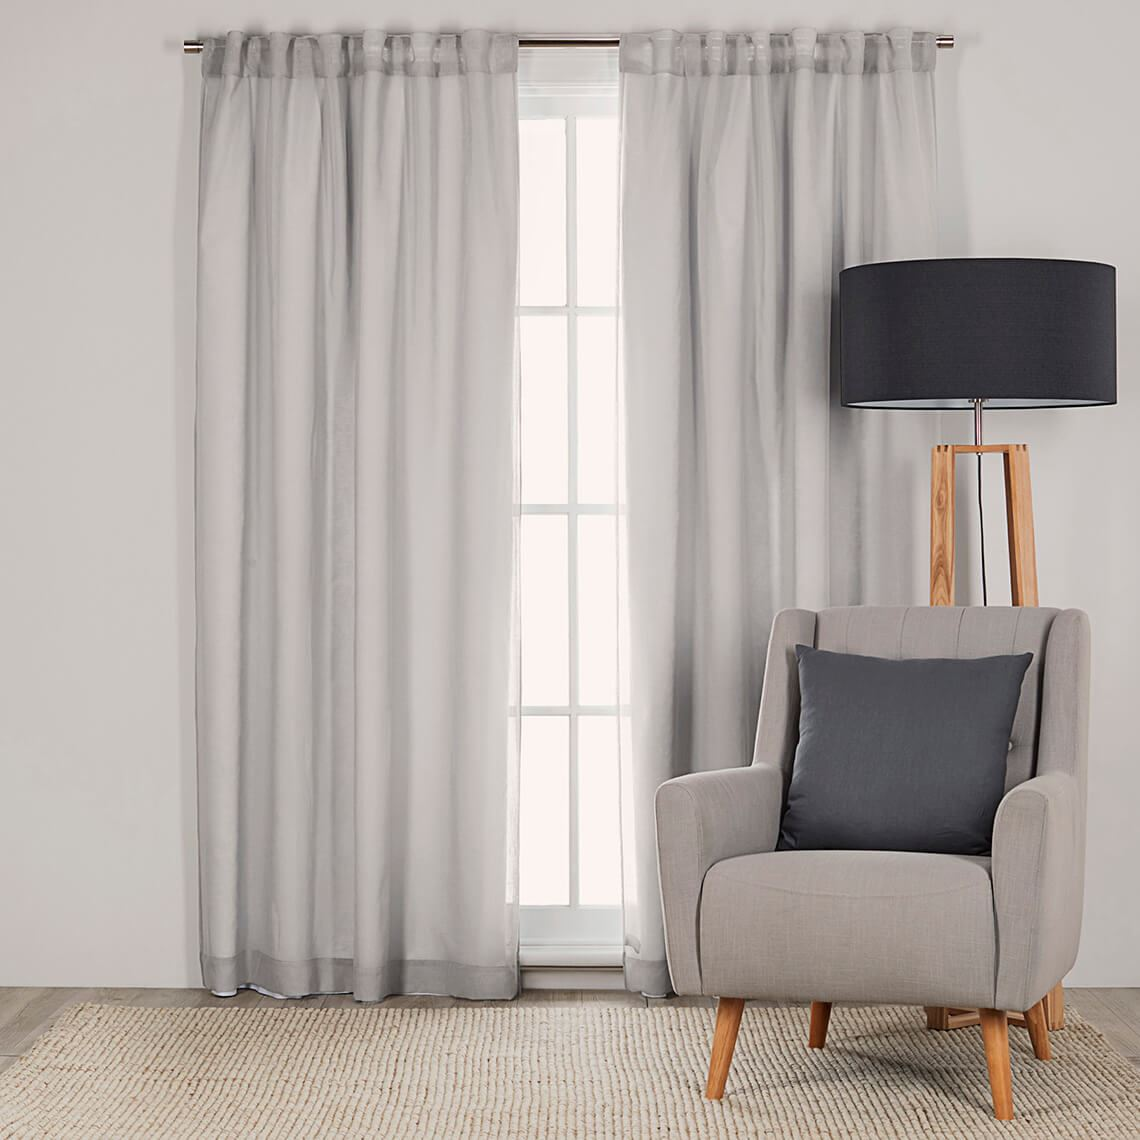 Curtain Liner Size W 140cm x D 0cm x H 225cm in White 100% Polyester/Stainless Steel Freedom by Freedom, a Curtains for sale on Style Sourcebook